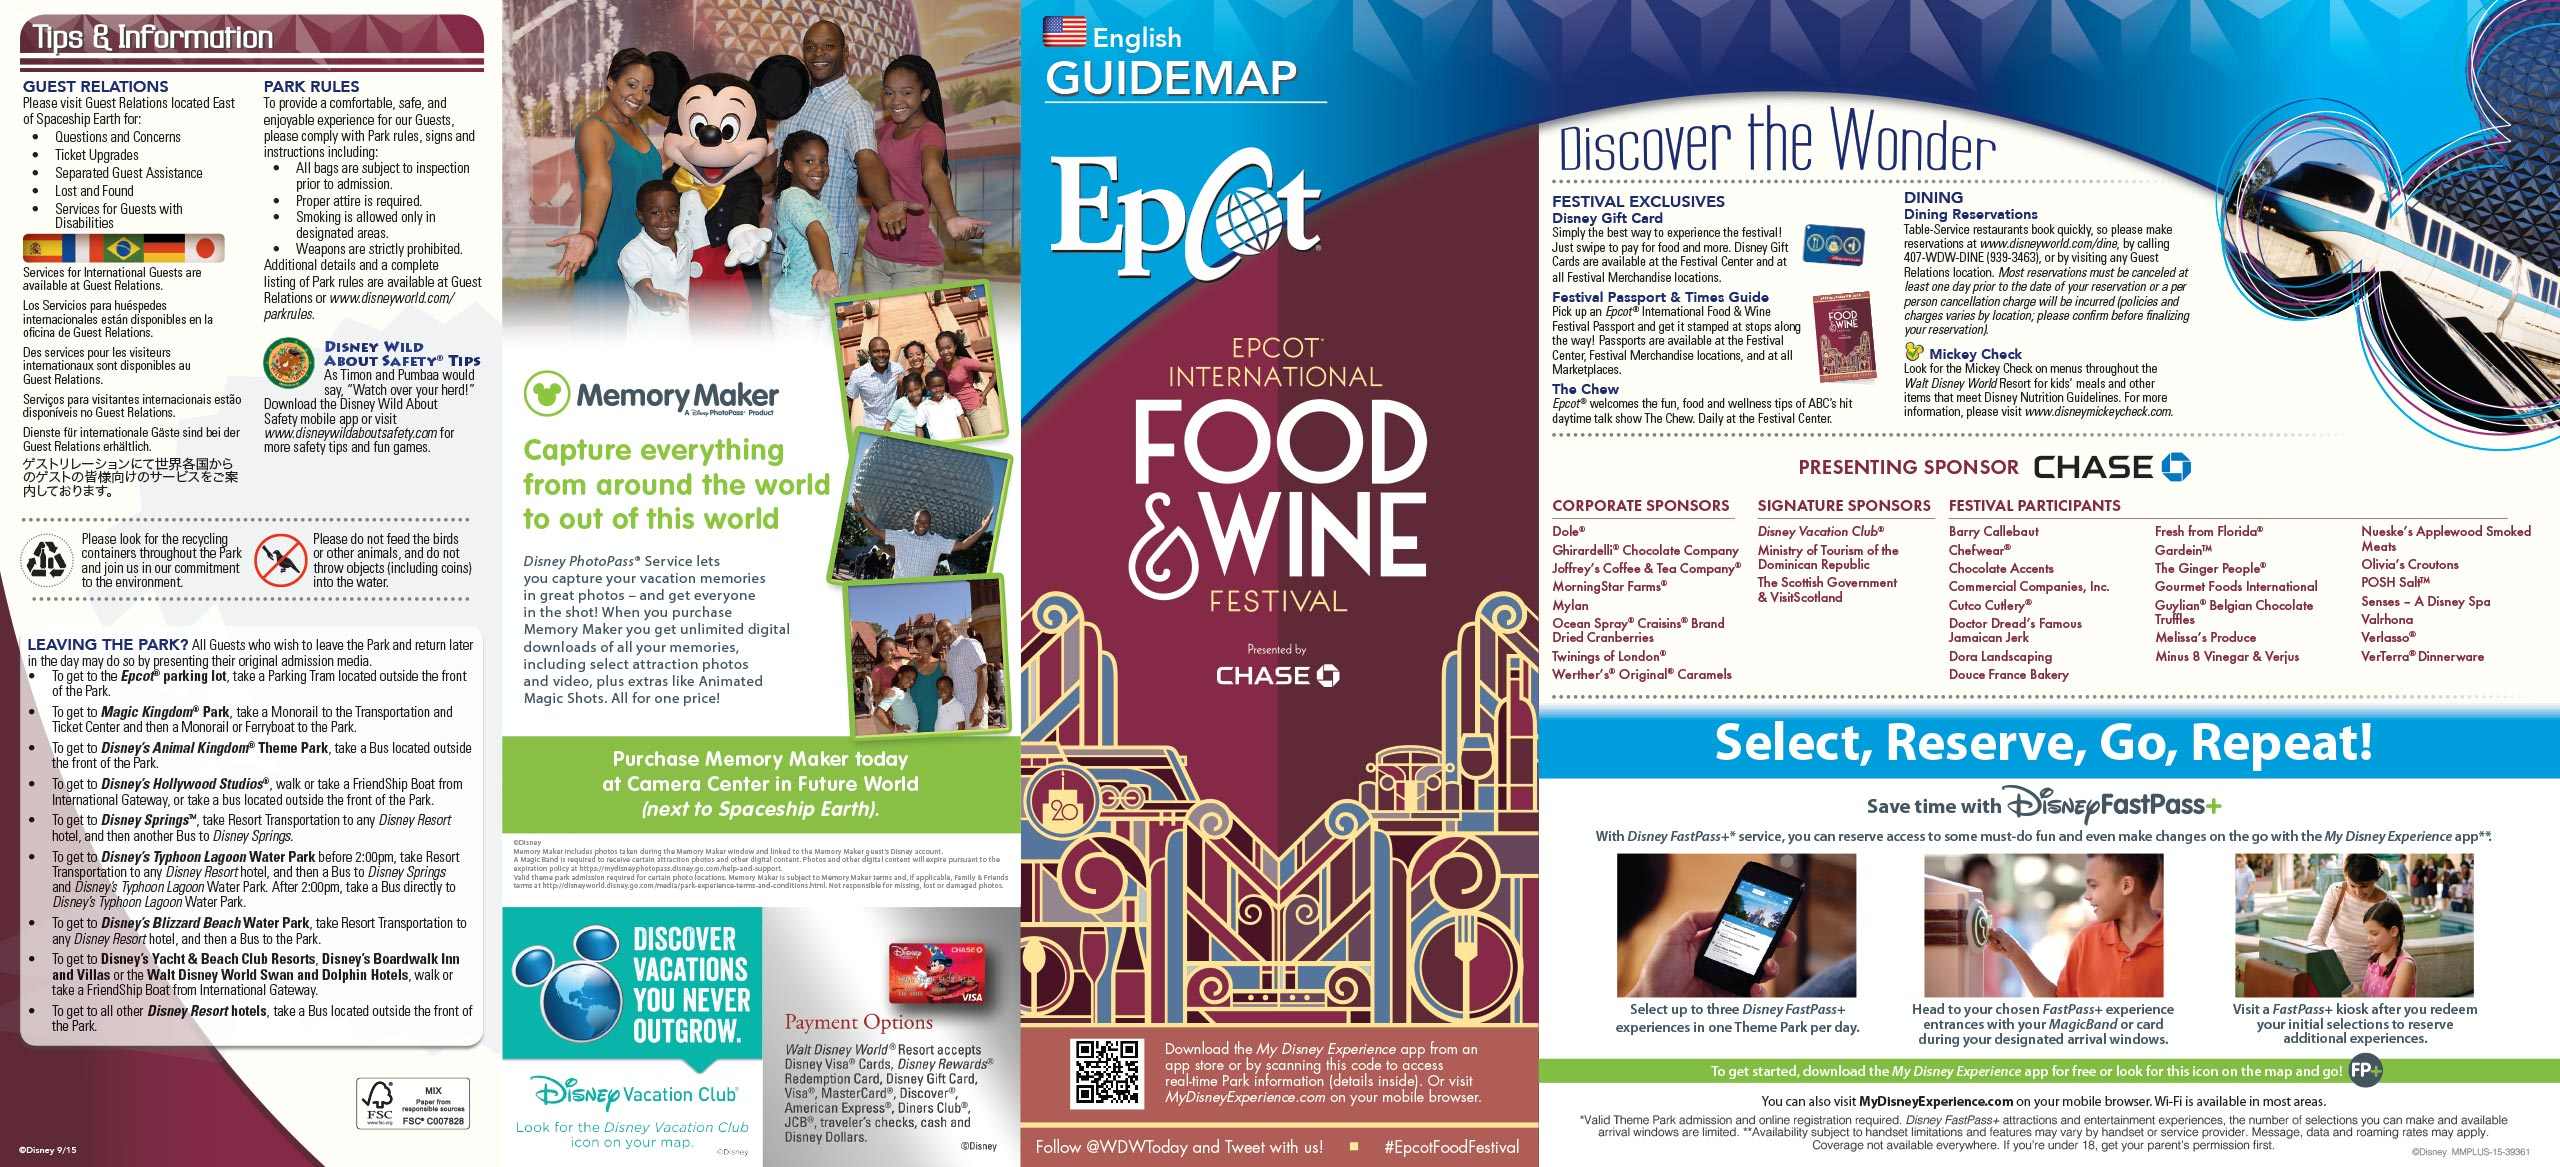 2015 Epcot International Food and Wine Festival Guide Map - Front